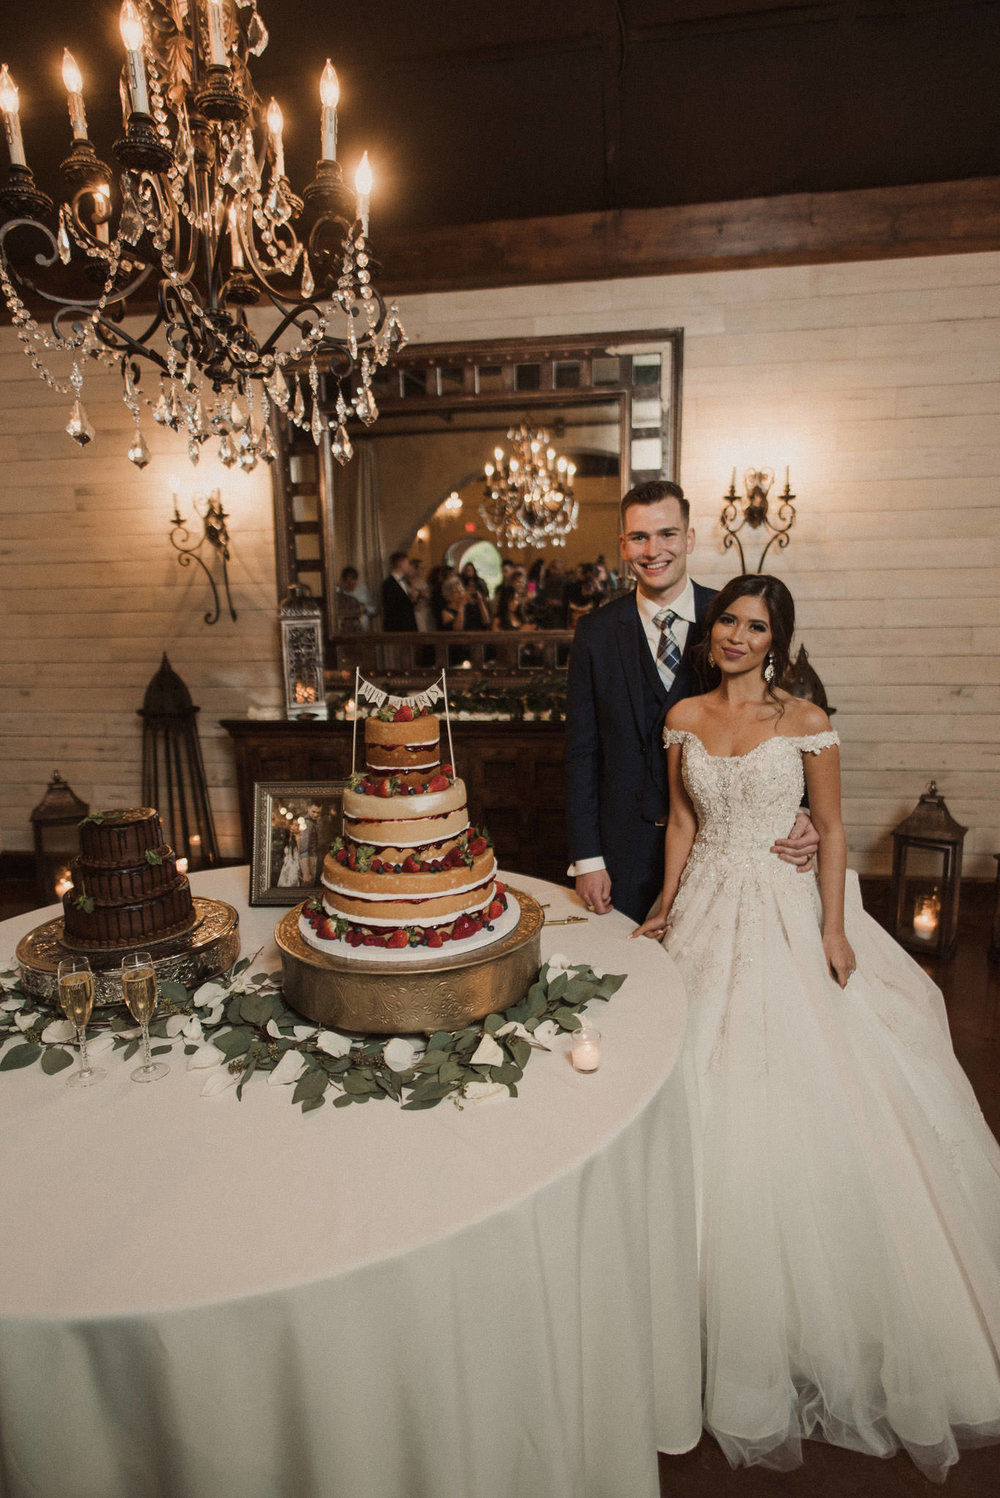 adriana-christian-wedding-re-sm-127.jpg